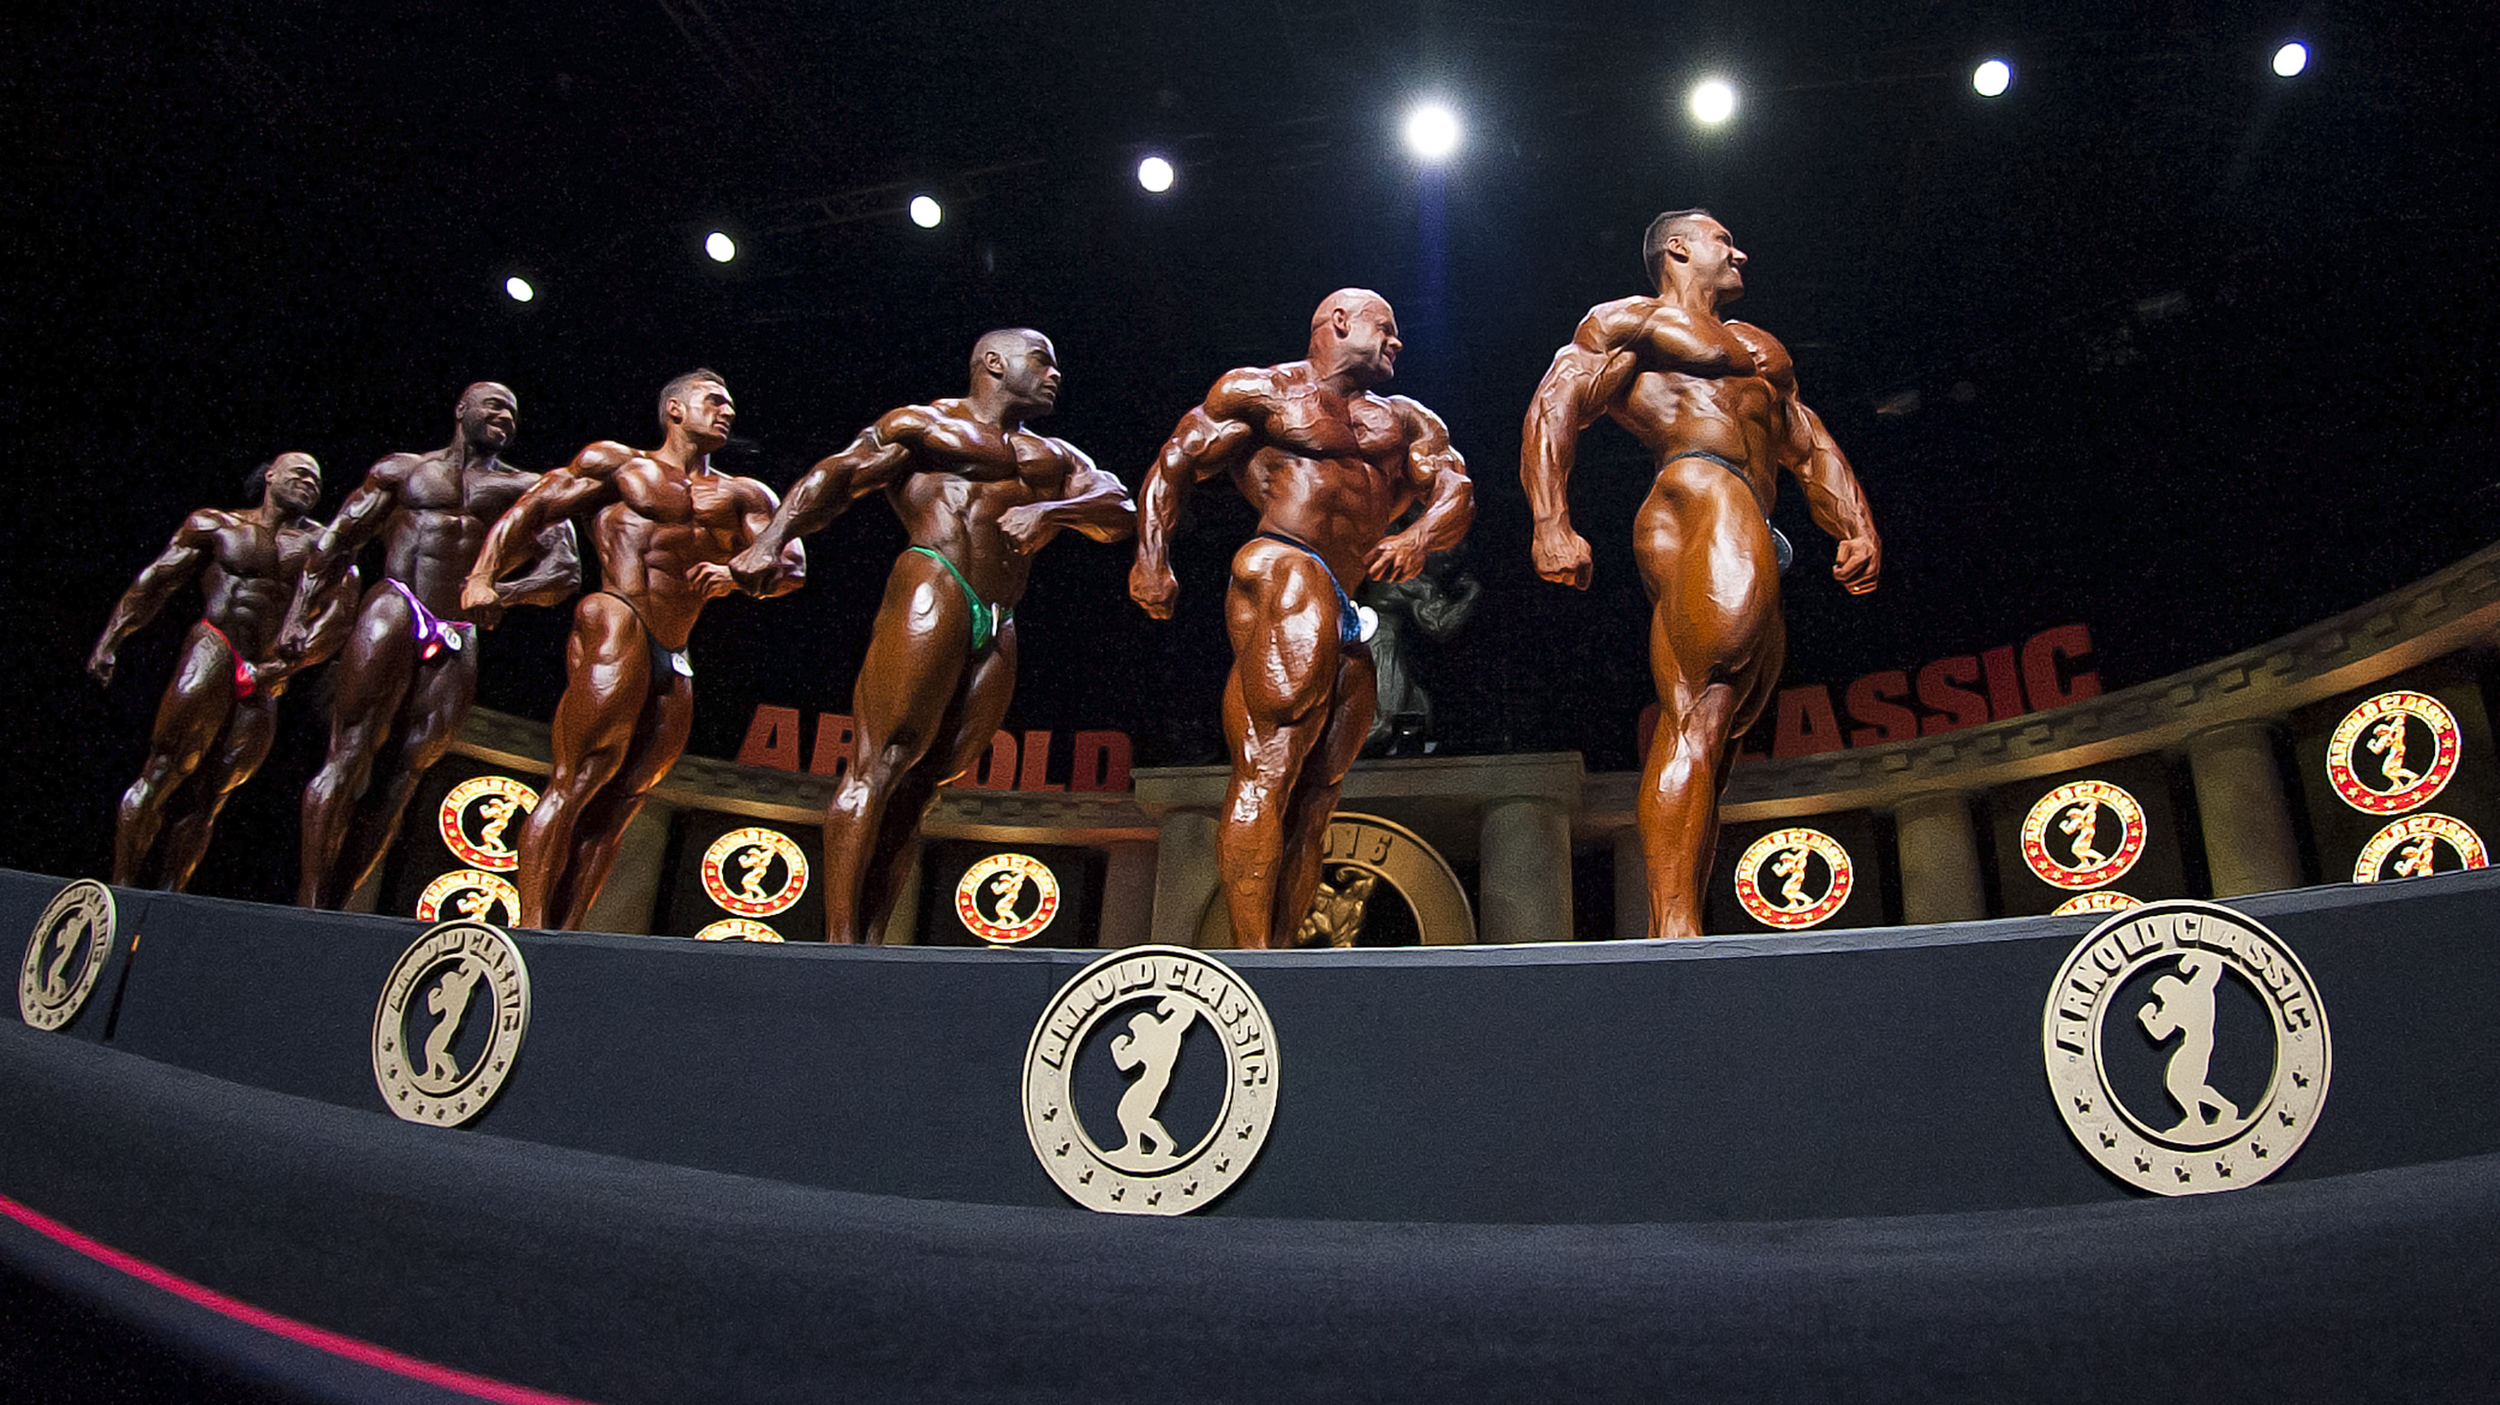 The Arnold Classic